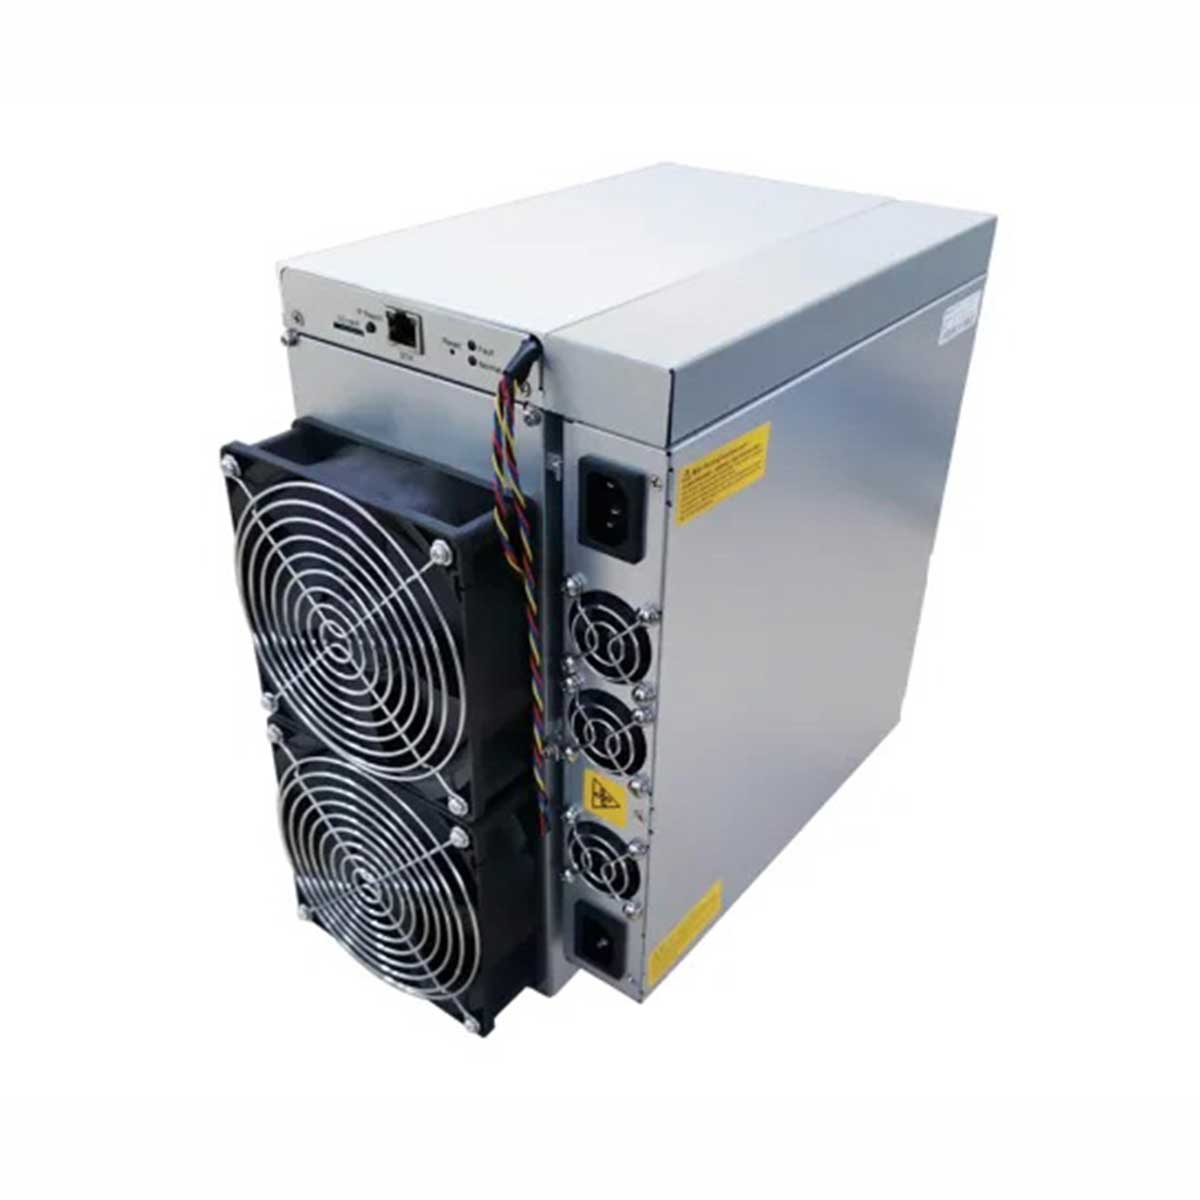 Bitmain-Antminer-T17e-53Th-1